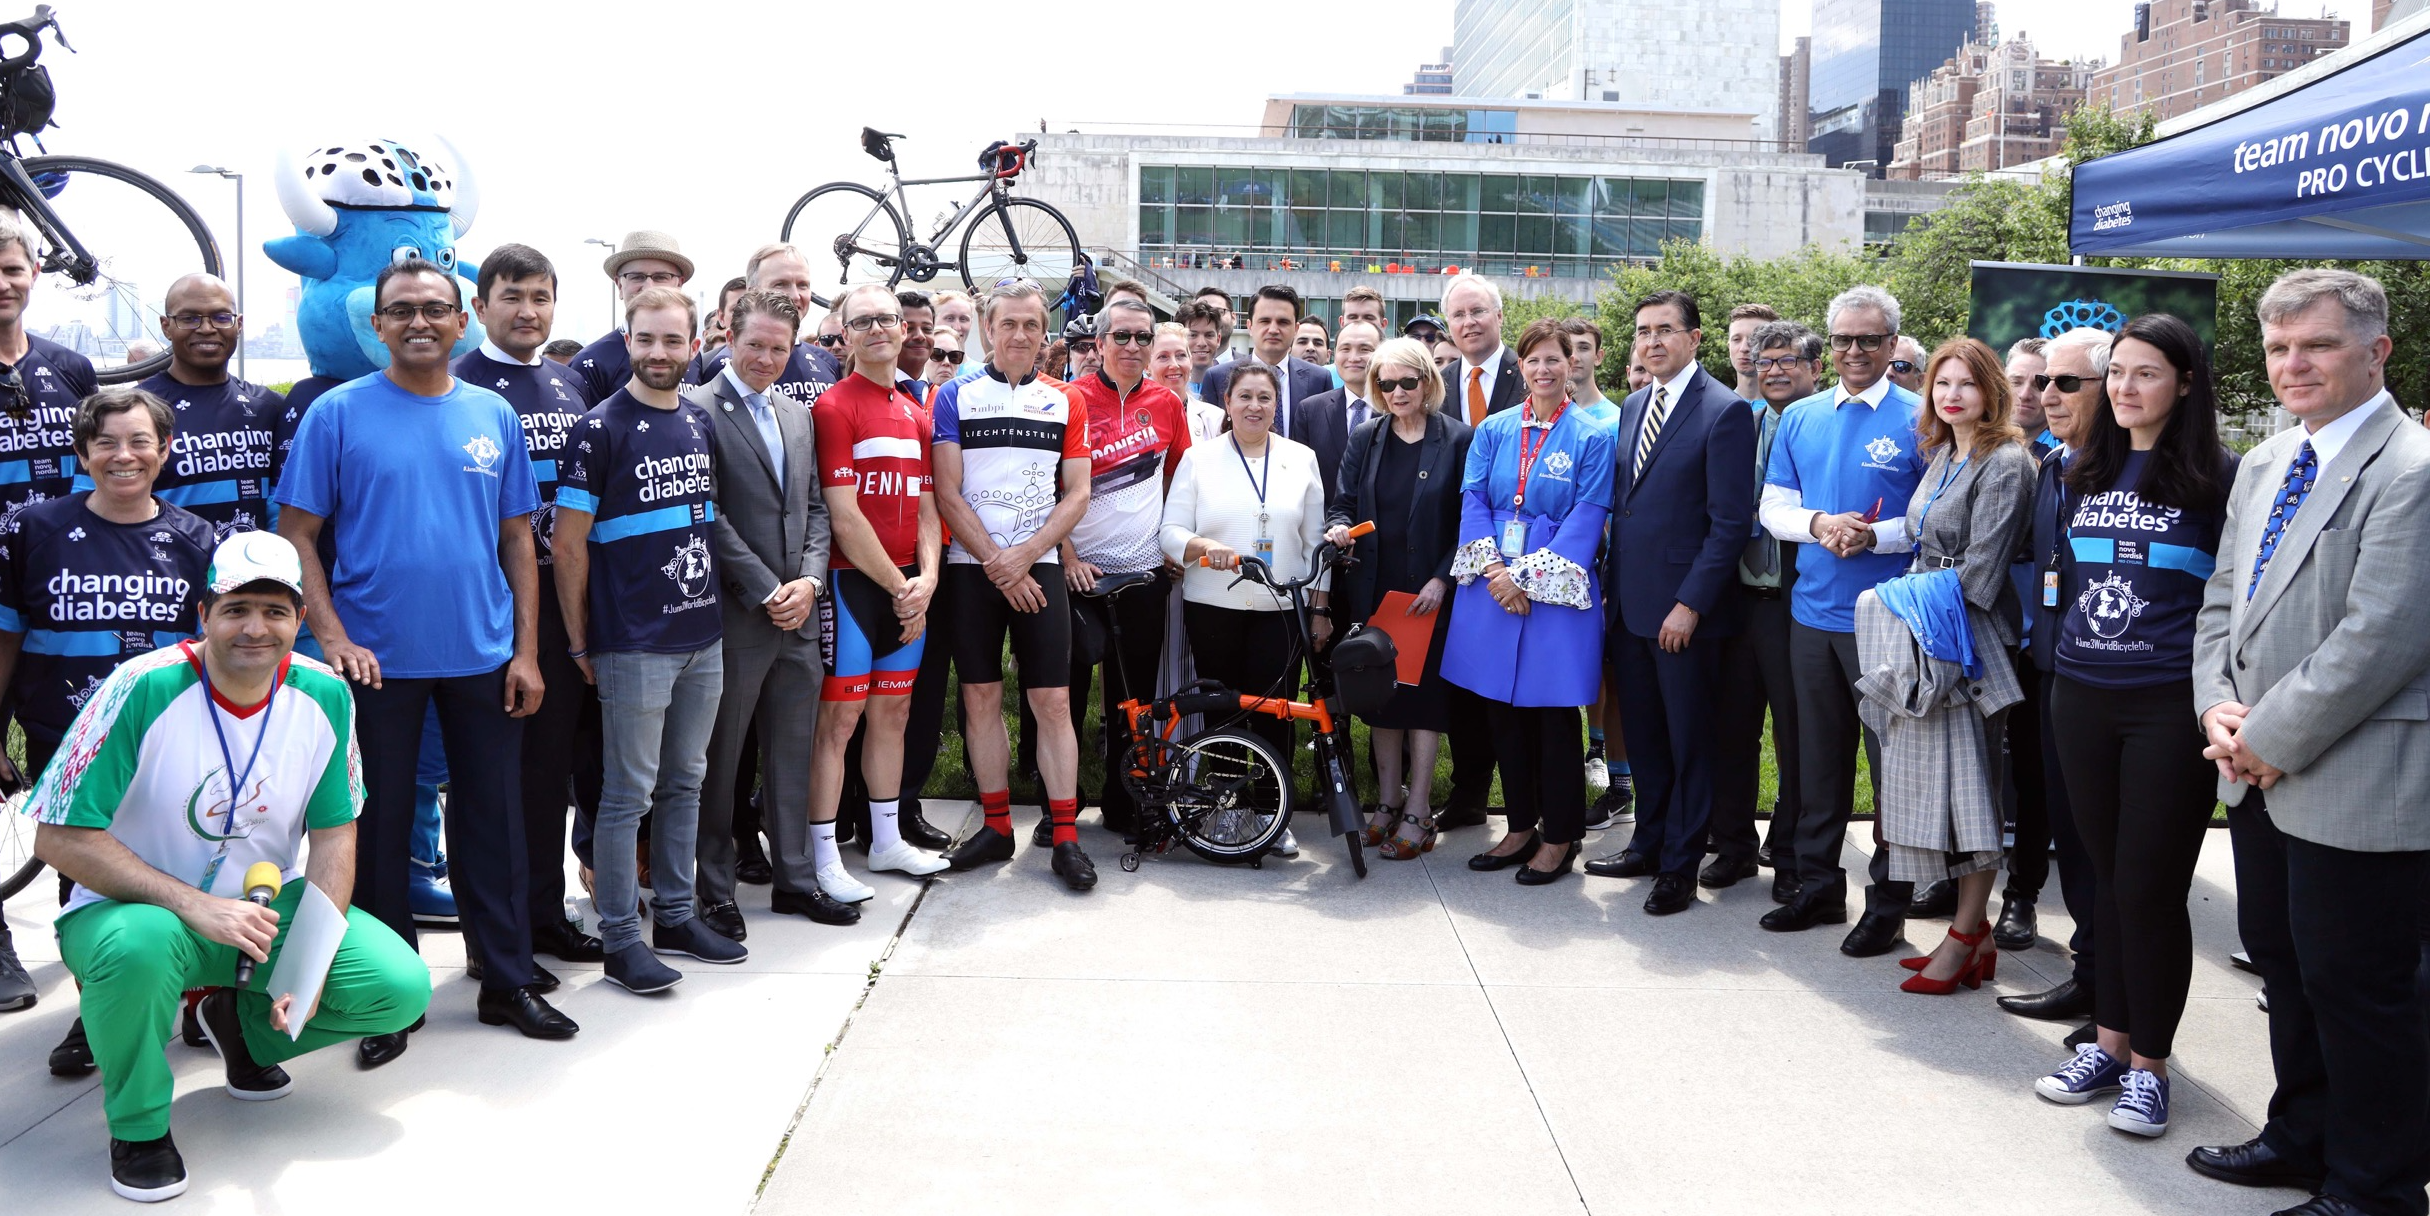 Celebrating World Bicycle Day at the United Nations